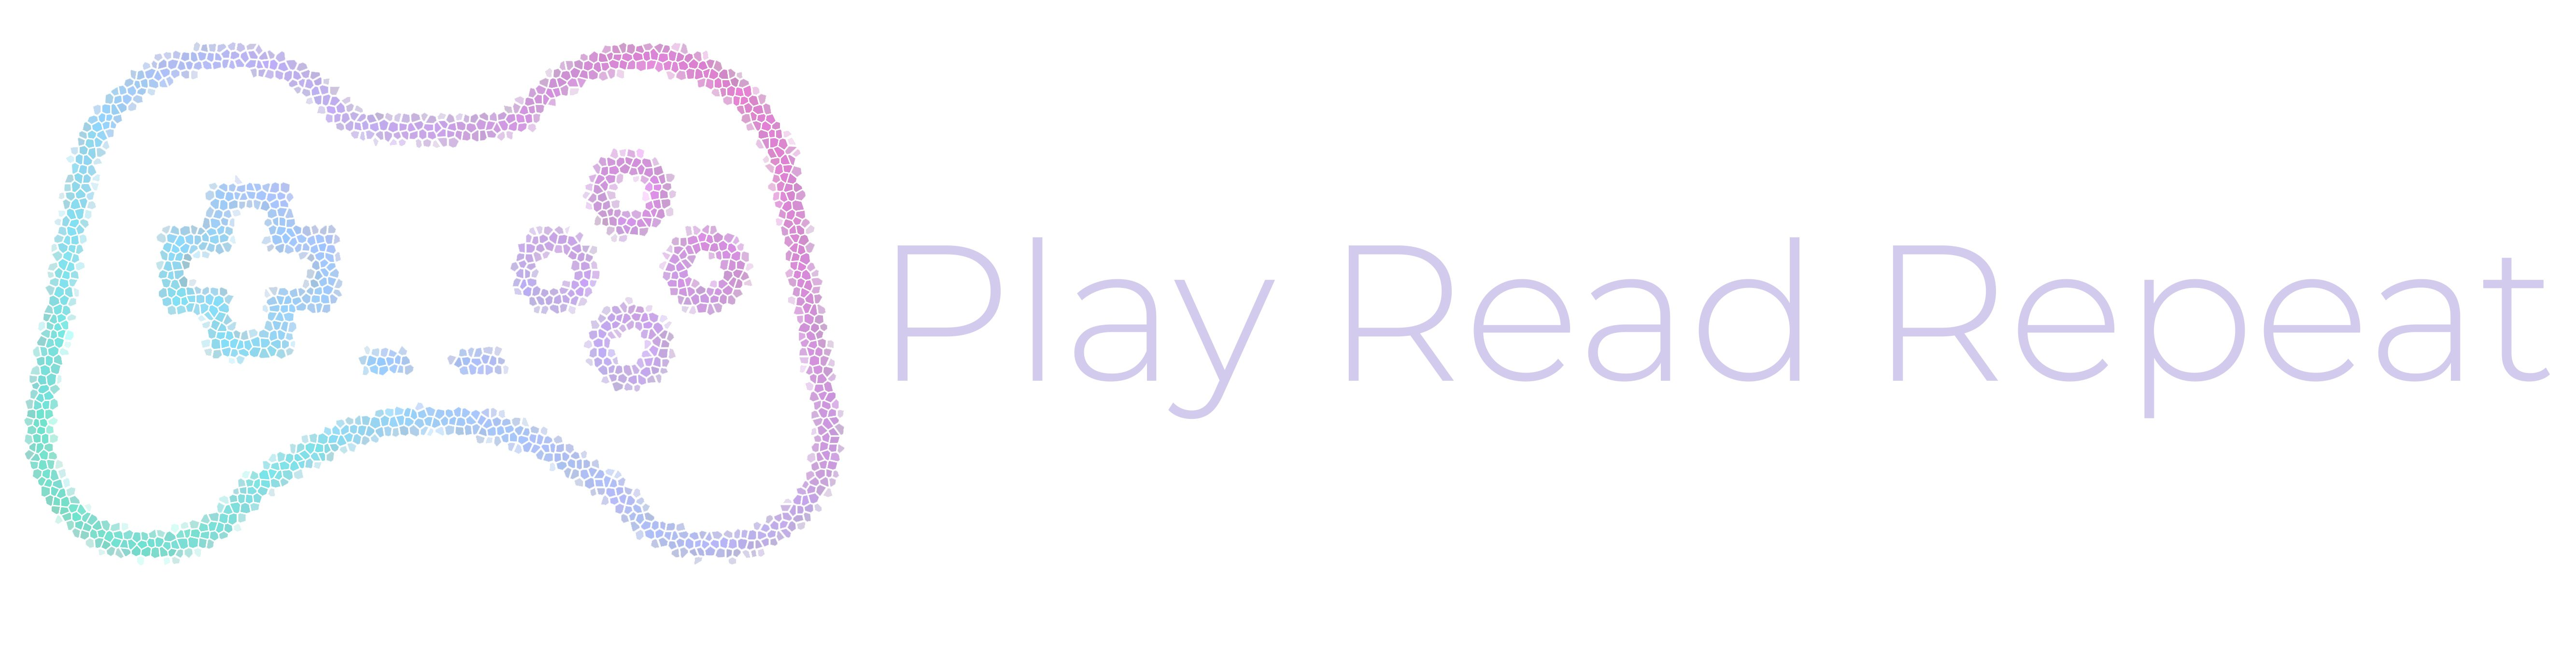 Play Read Repeat